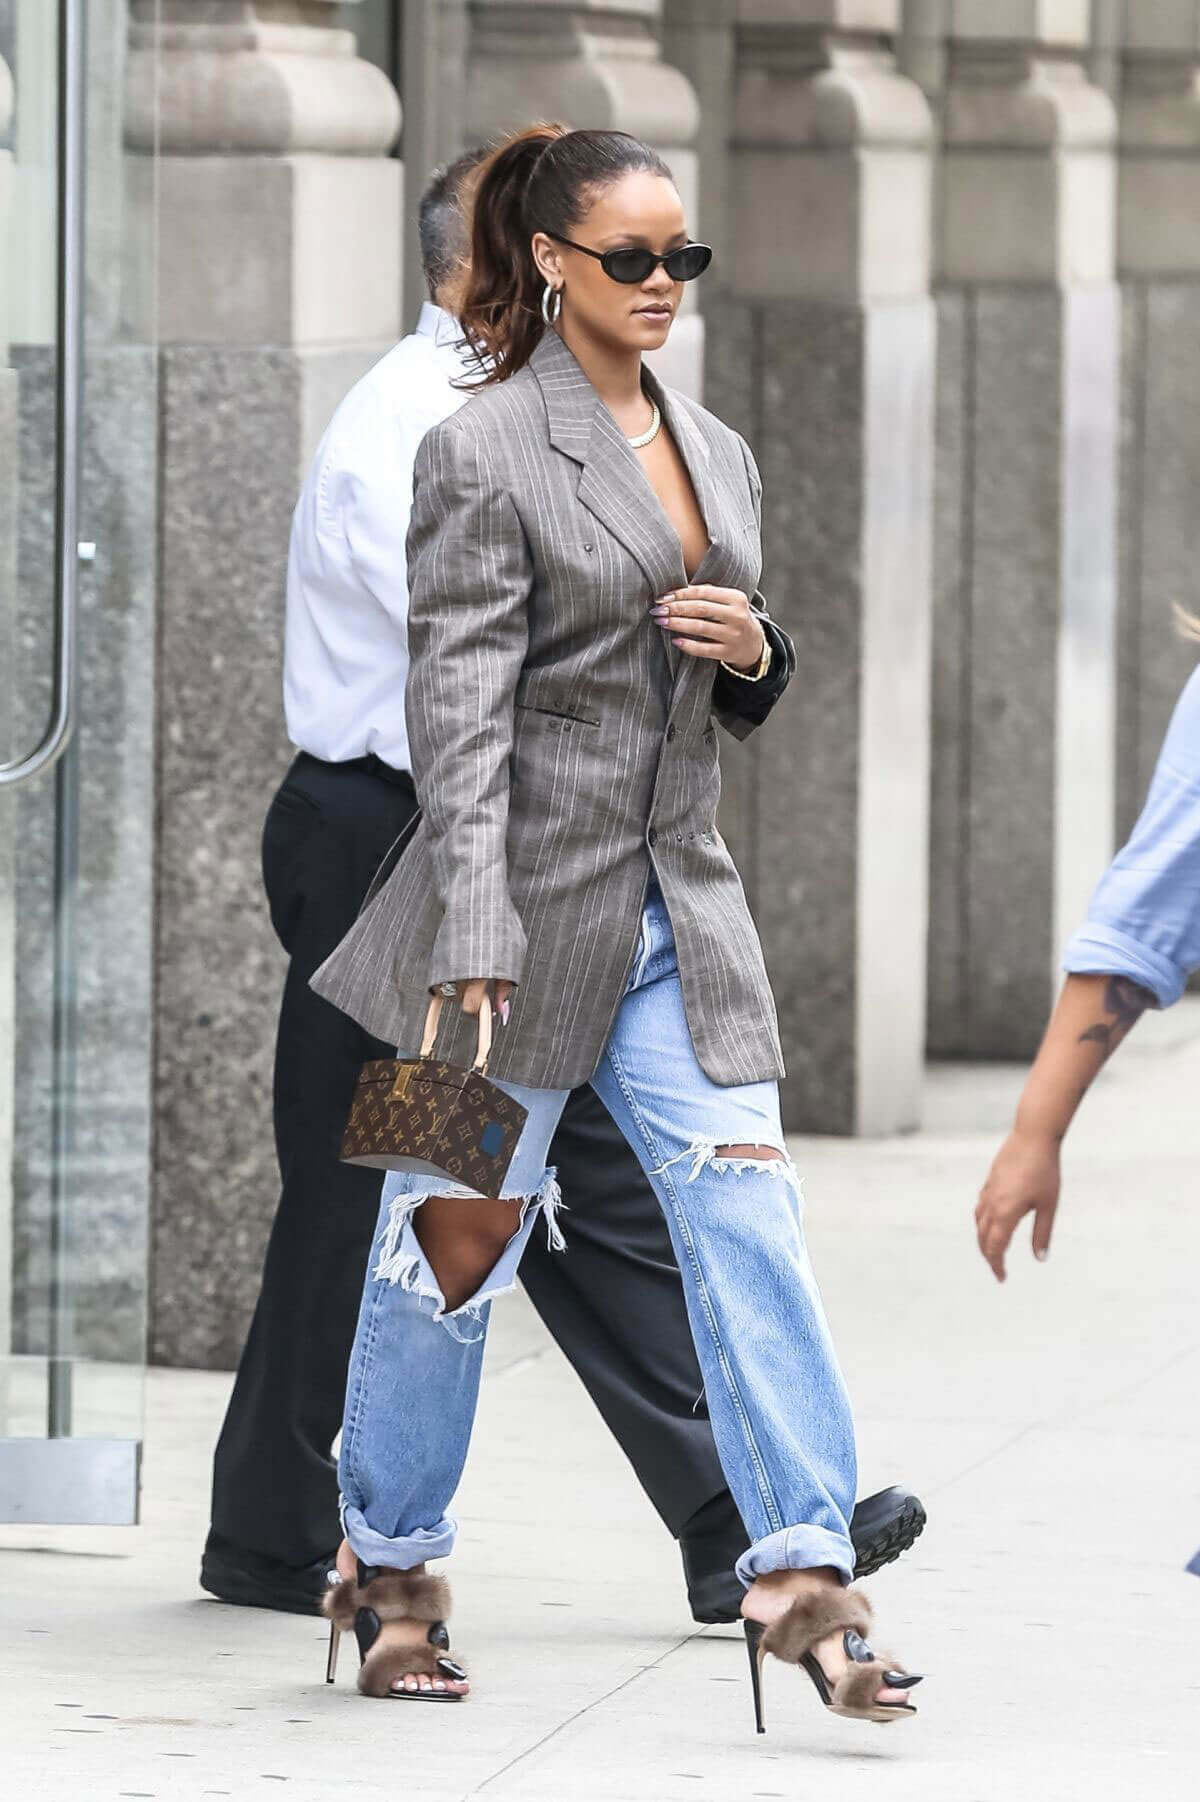 Rihanna without Bra wears Suit Heading to New York Fashion Week in New York